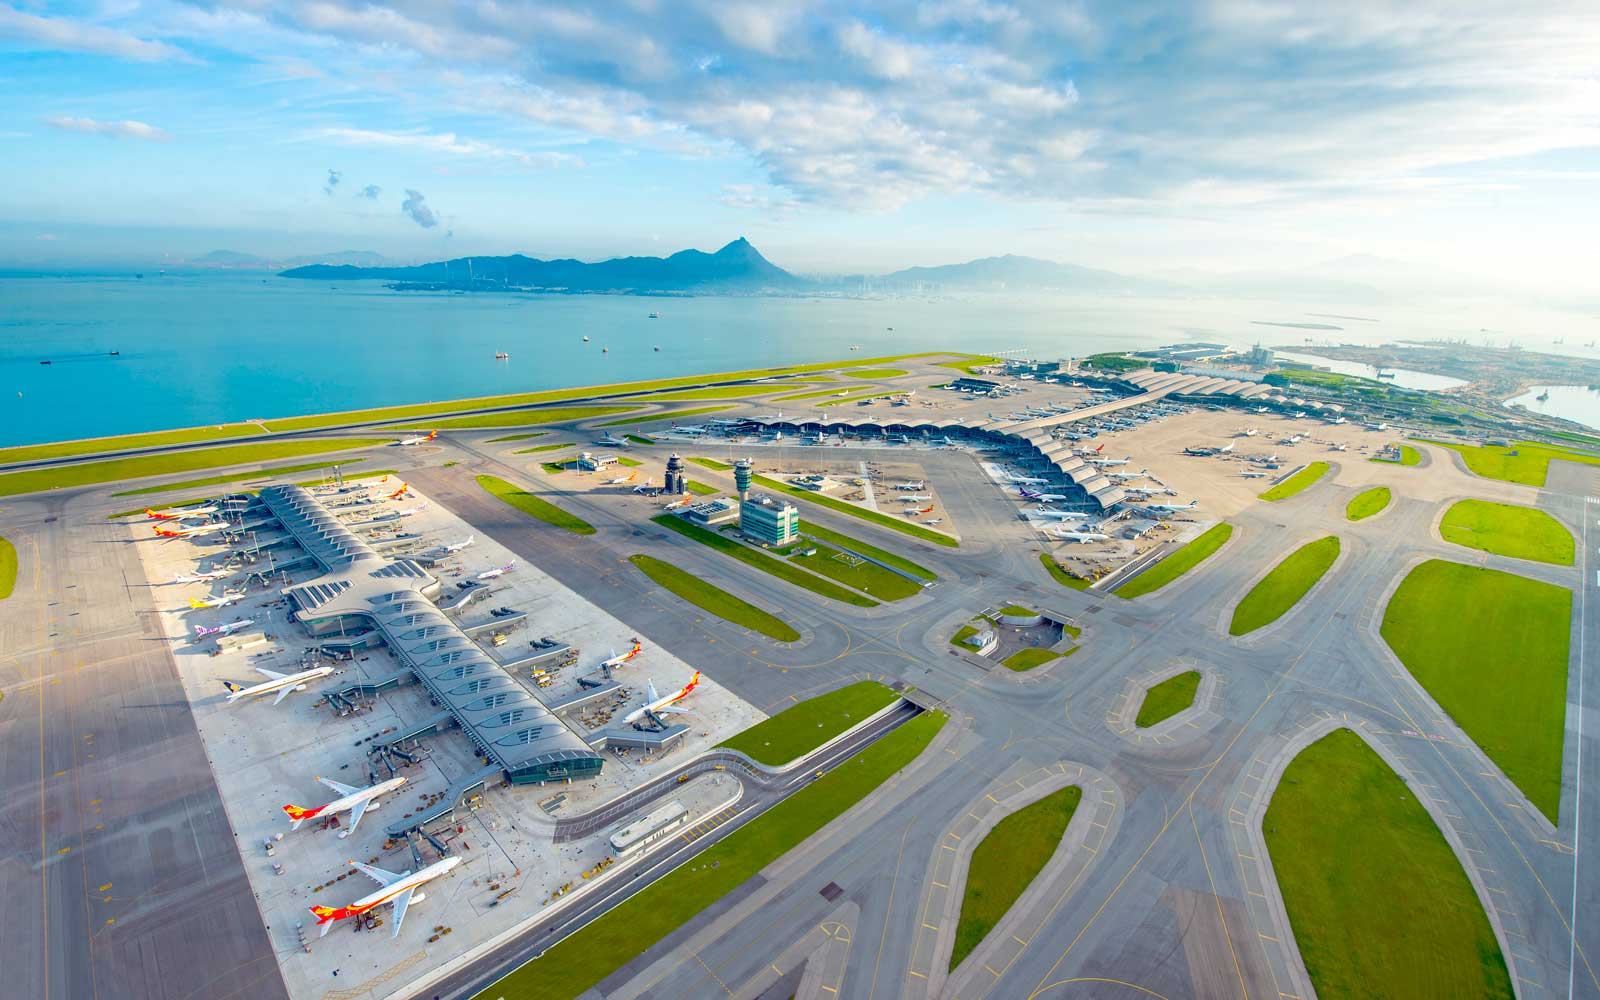 Aerial view of Hong Kong International Airport